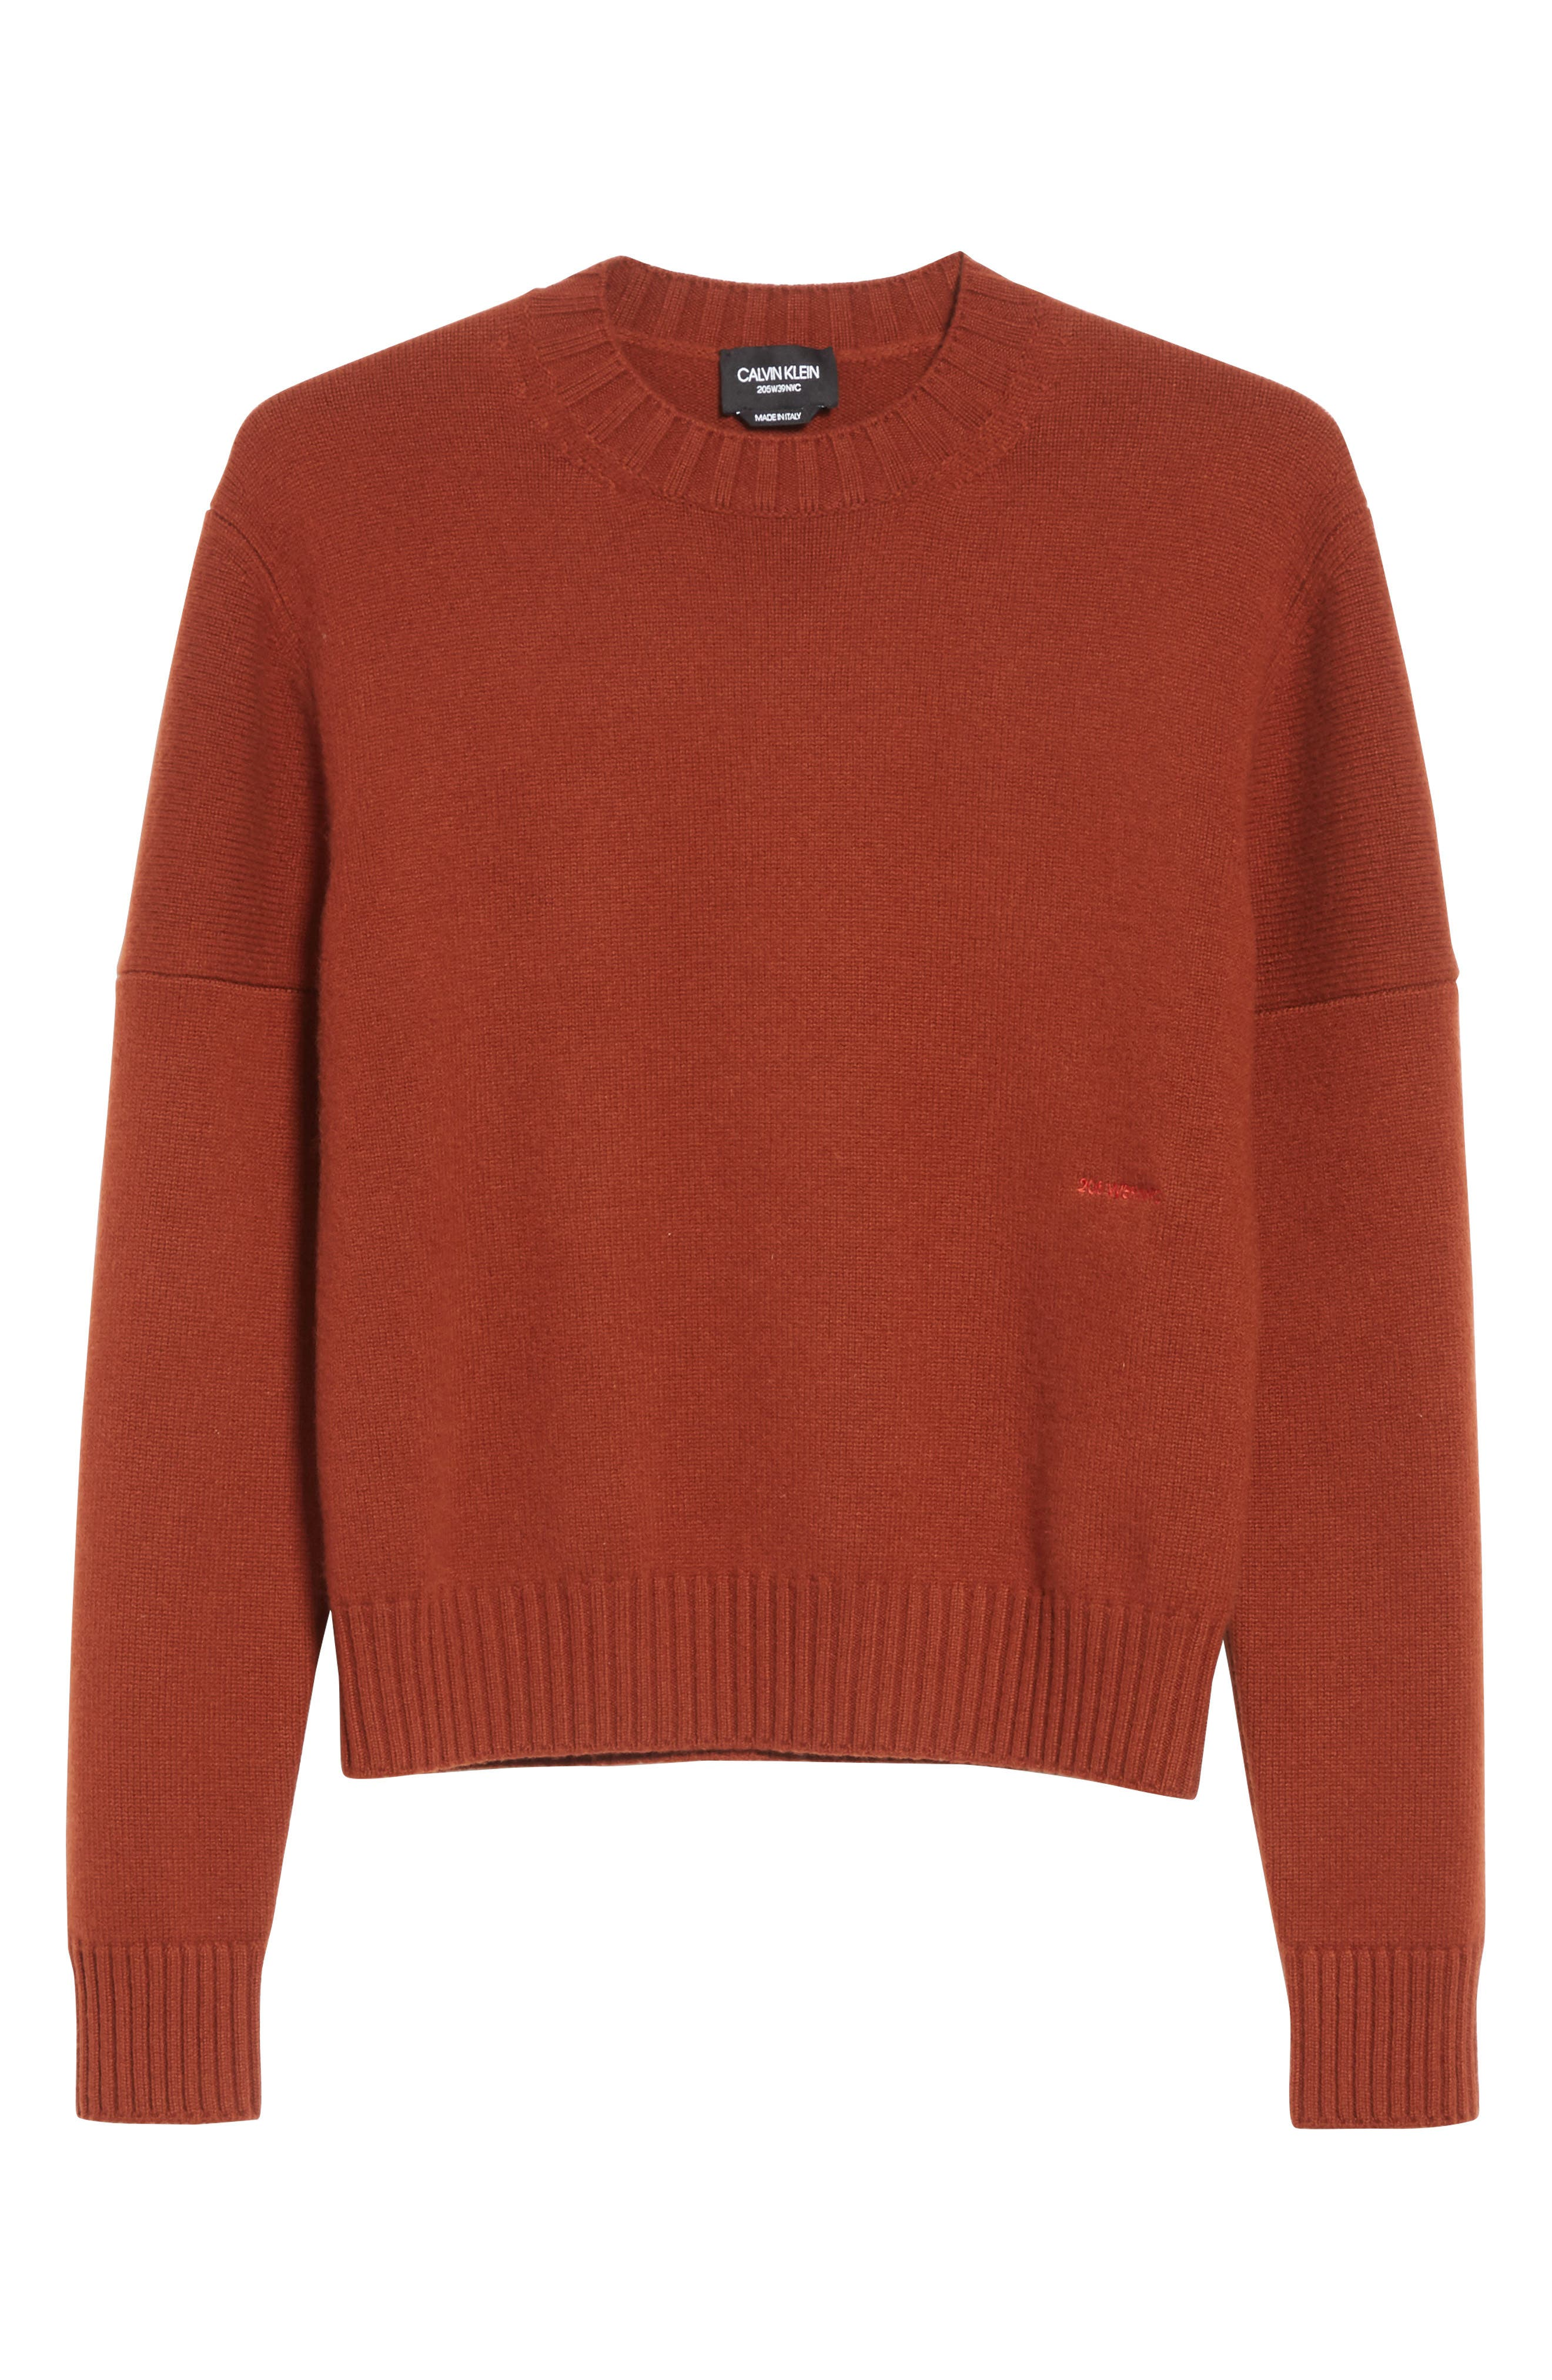 CALVIN KLEIN 205W39NYC,                             Cashmere Sweater,                             Alternate thumbnail 6, color,                             605